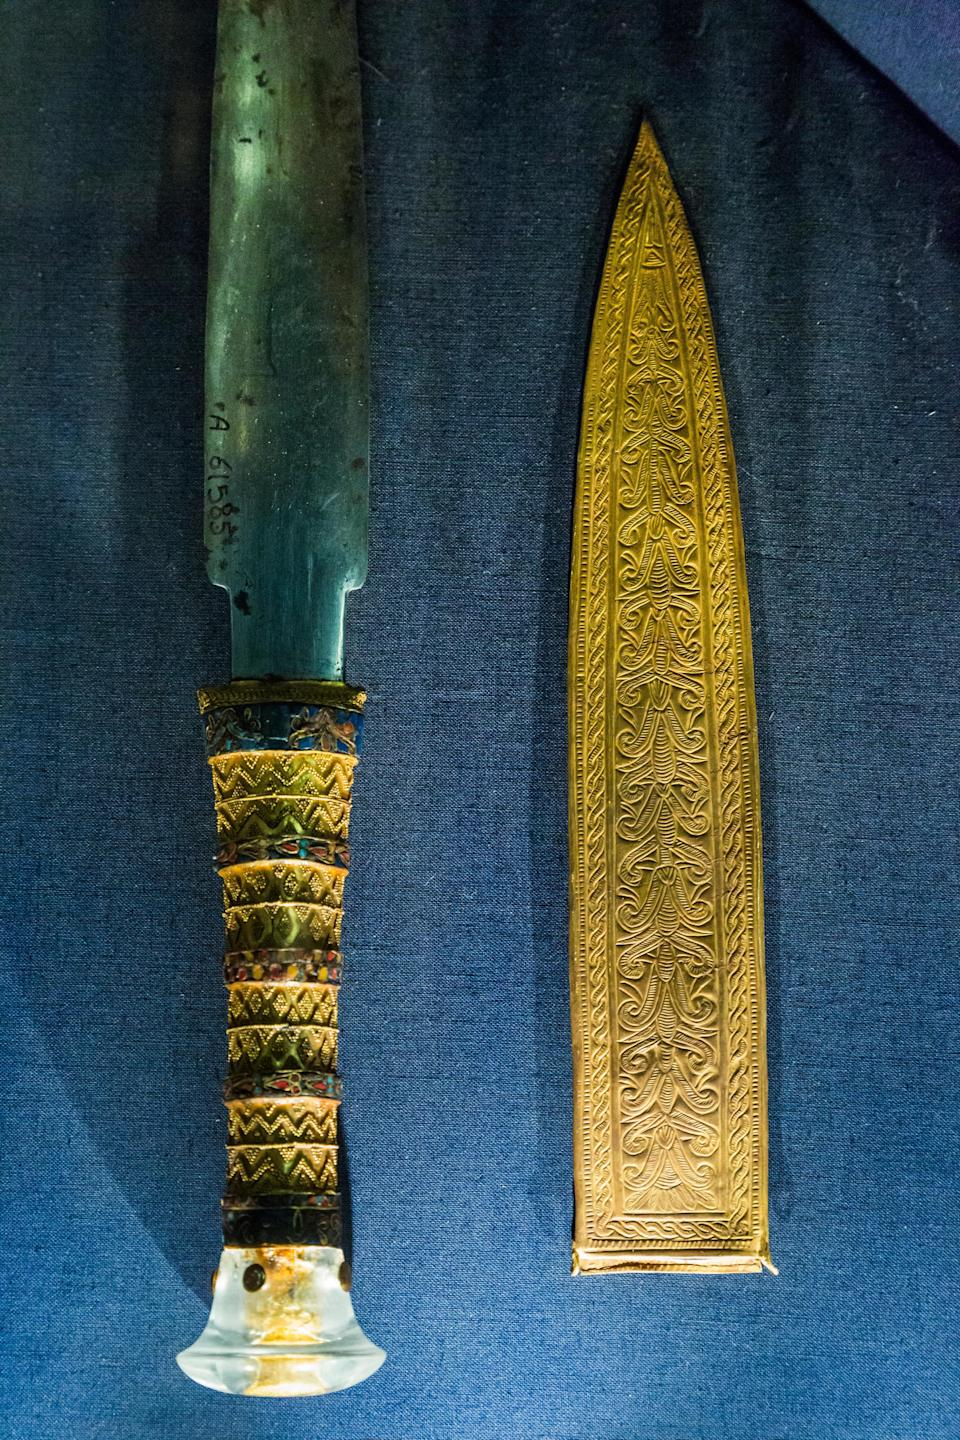 An ancient dagger with a hilt and sheath made of gold